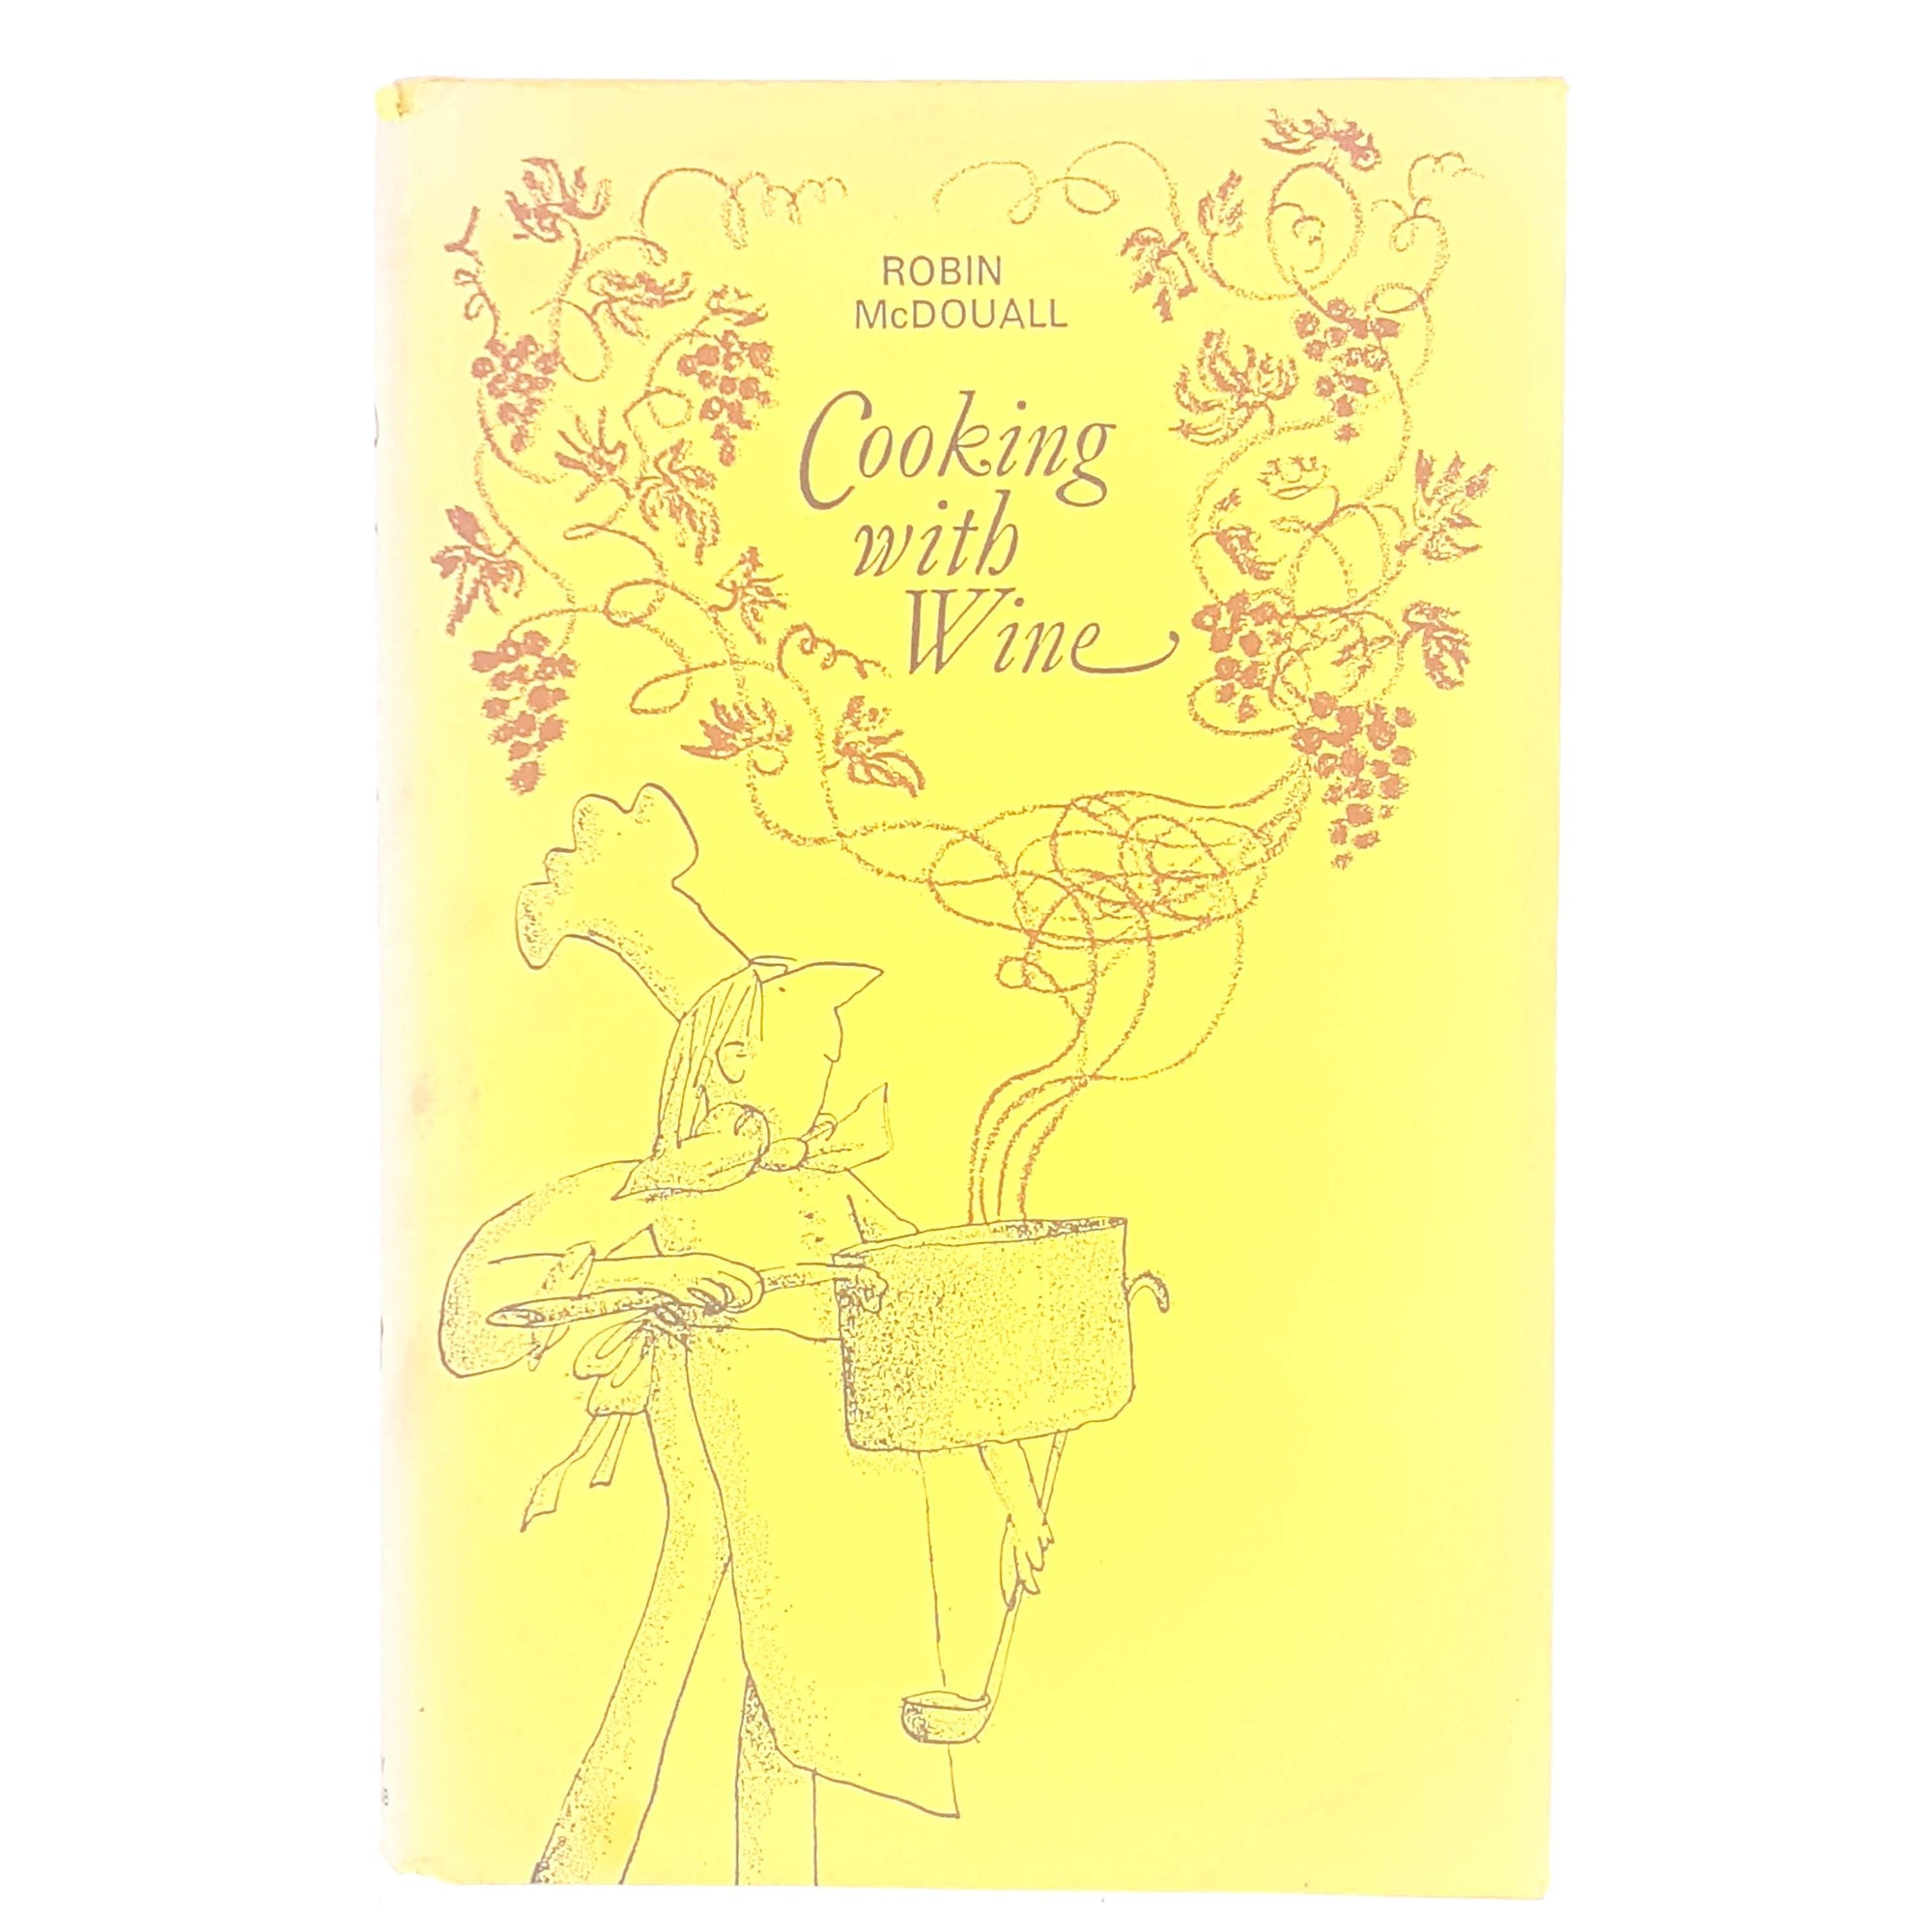 antique-cooking-with-wine-cook-books-robin-mcdouall-classic-thrift-cookery-book-club-1968-patterned-books-decorative-vintage-old-country-house-library-